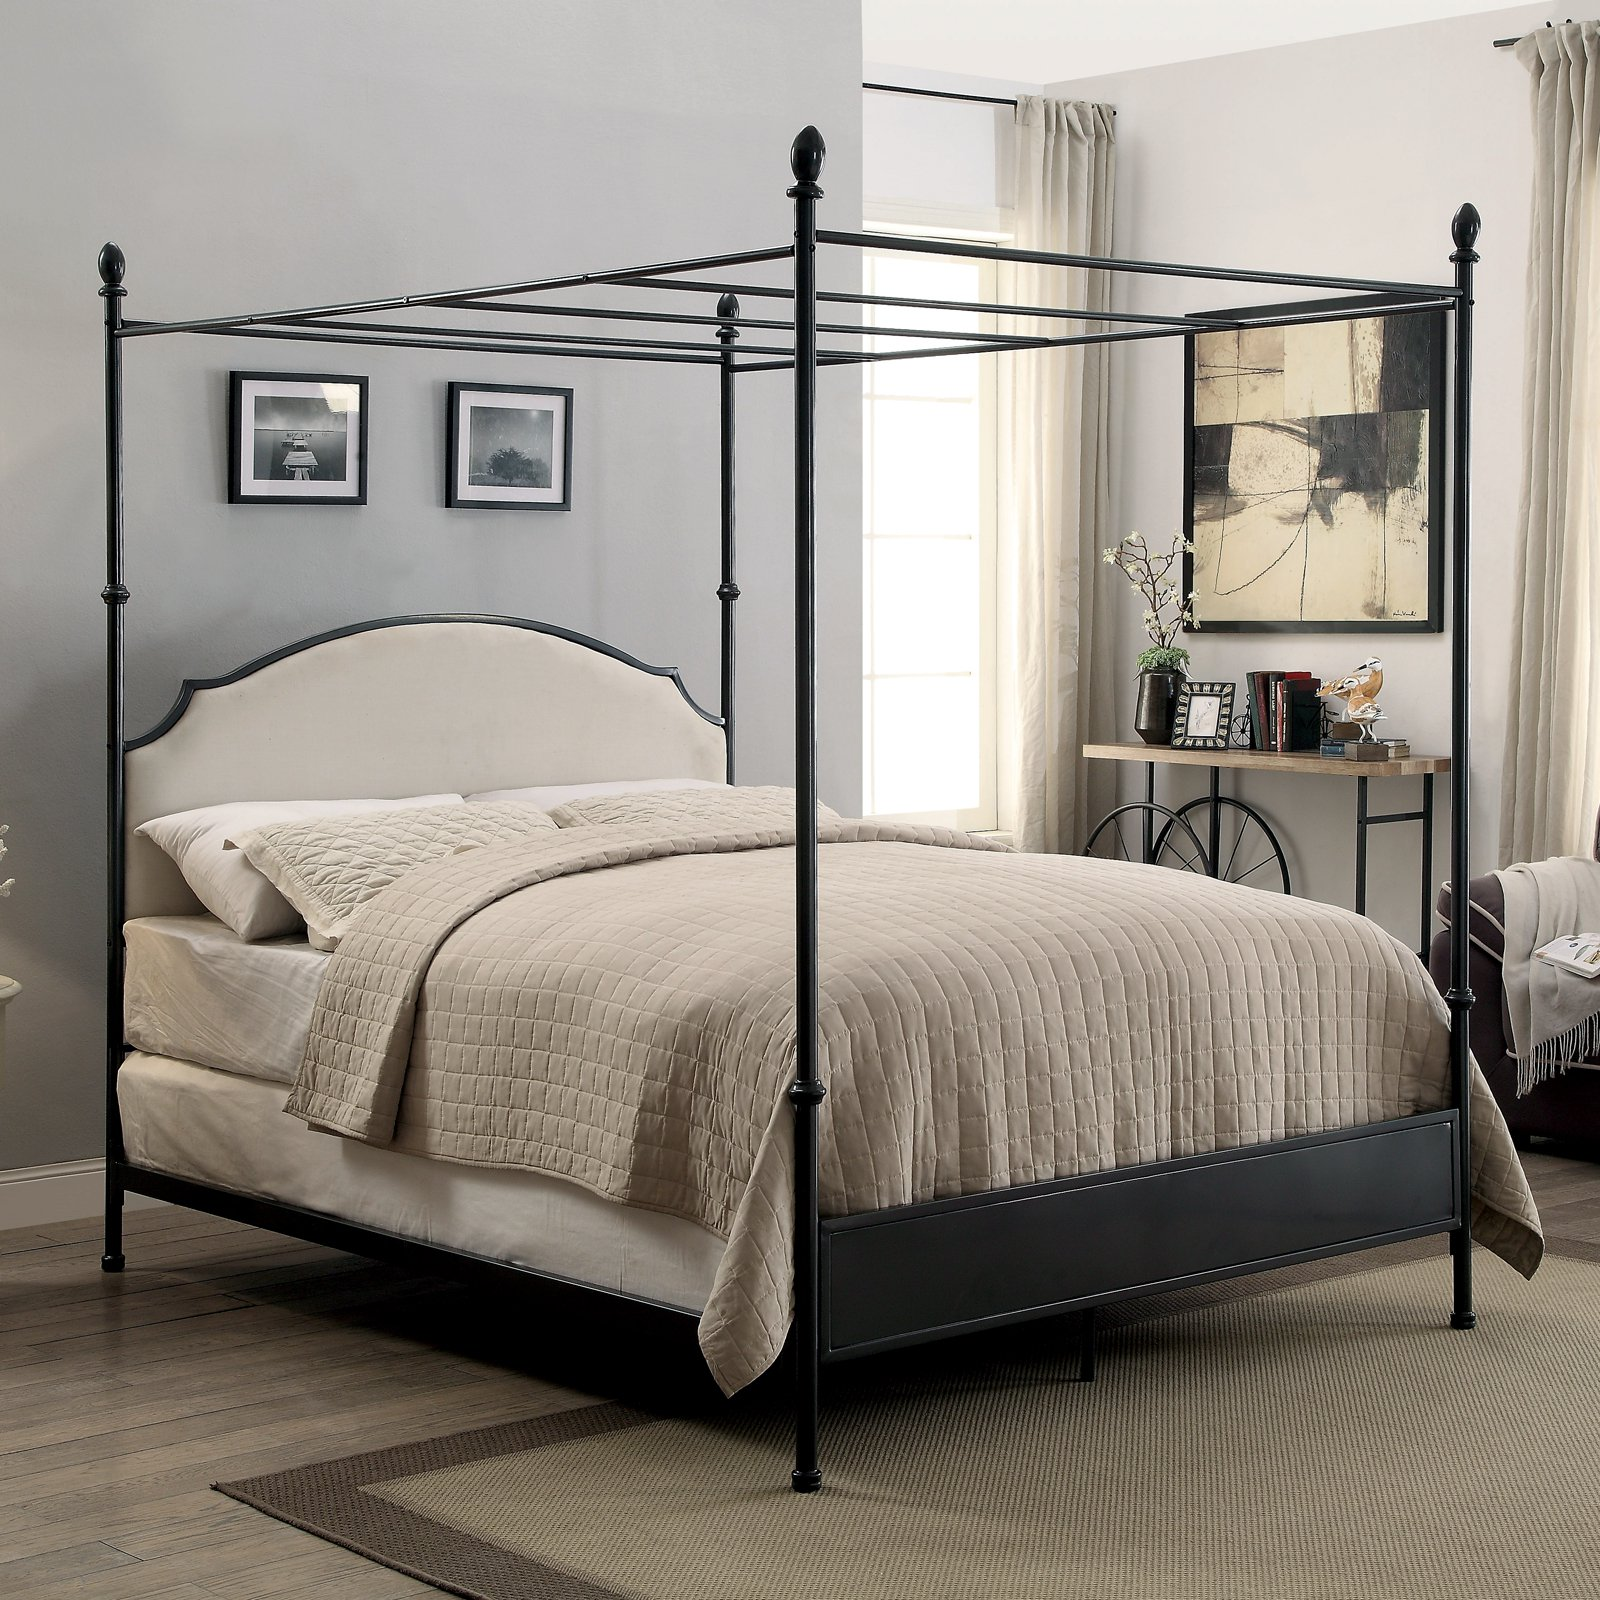 Furniture of America Francine Transitional Arched Fabric and Metal Canopy Bed